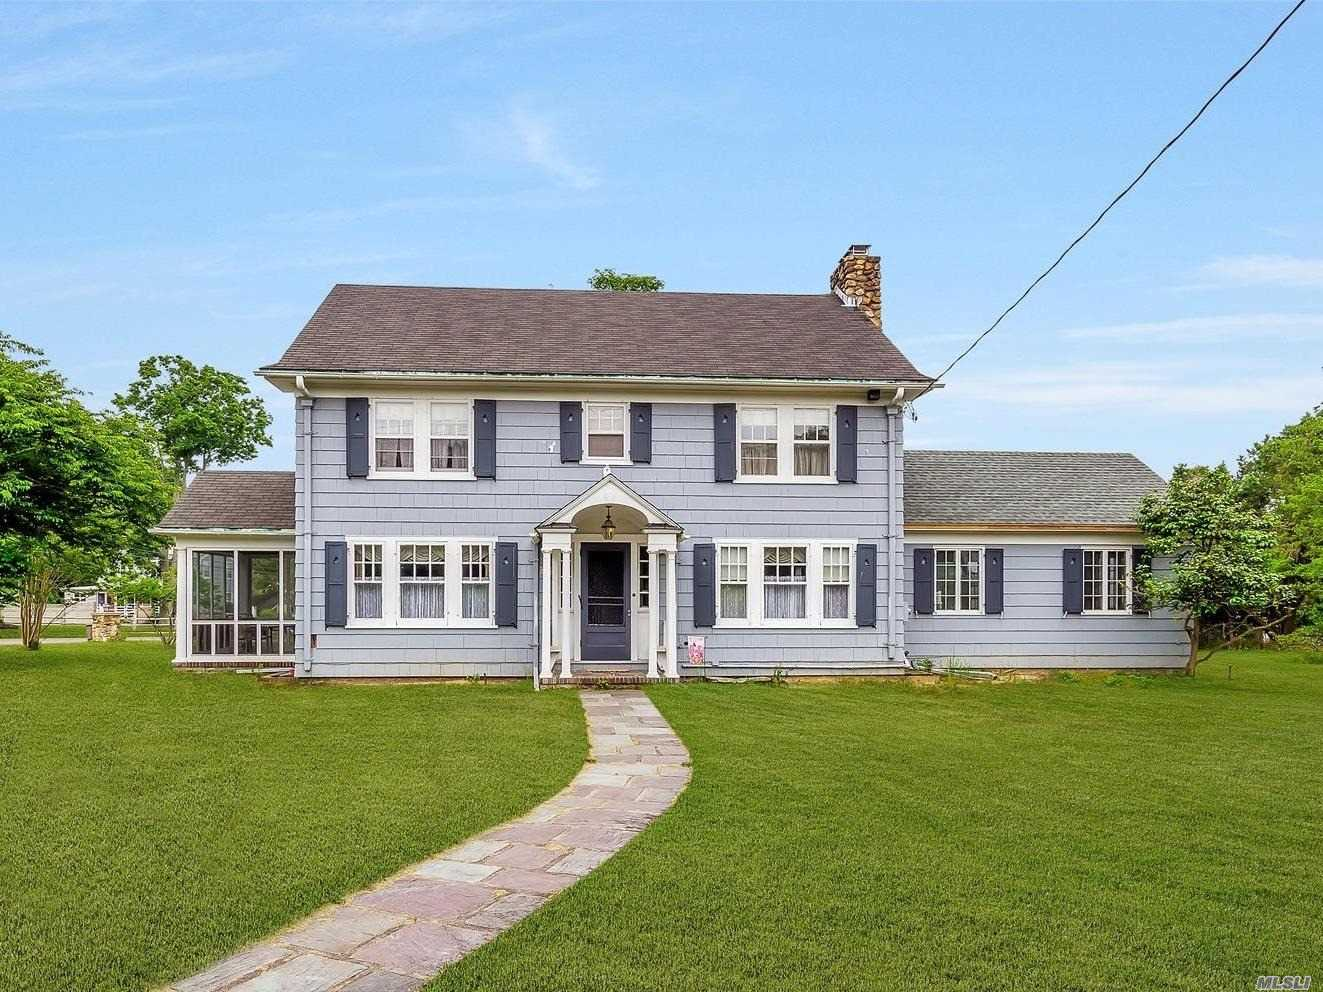 Own A Piece Of Paradise In The Gracious Colonial With Spectacular Views Of The Beautiful Moriches Bay & Dunn Road. Hardwood Flooring Throughout This Spacious & Inviting Home Thats Filled With Old World Charm Throughout Every Room. Call Today To View This Very Unique & Rare Find Set On Over An Acre Property, One For Sure Not To Miss If Older Homes With A View Is Your Love. No Flood Insurance Needed Here.